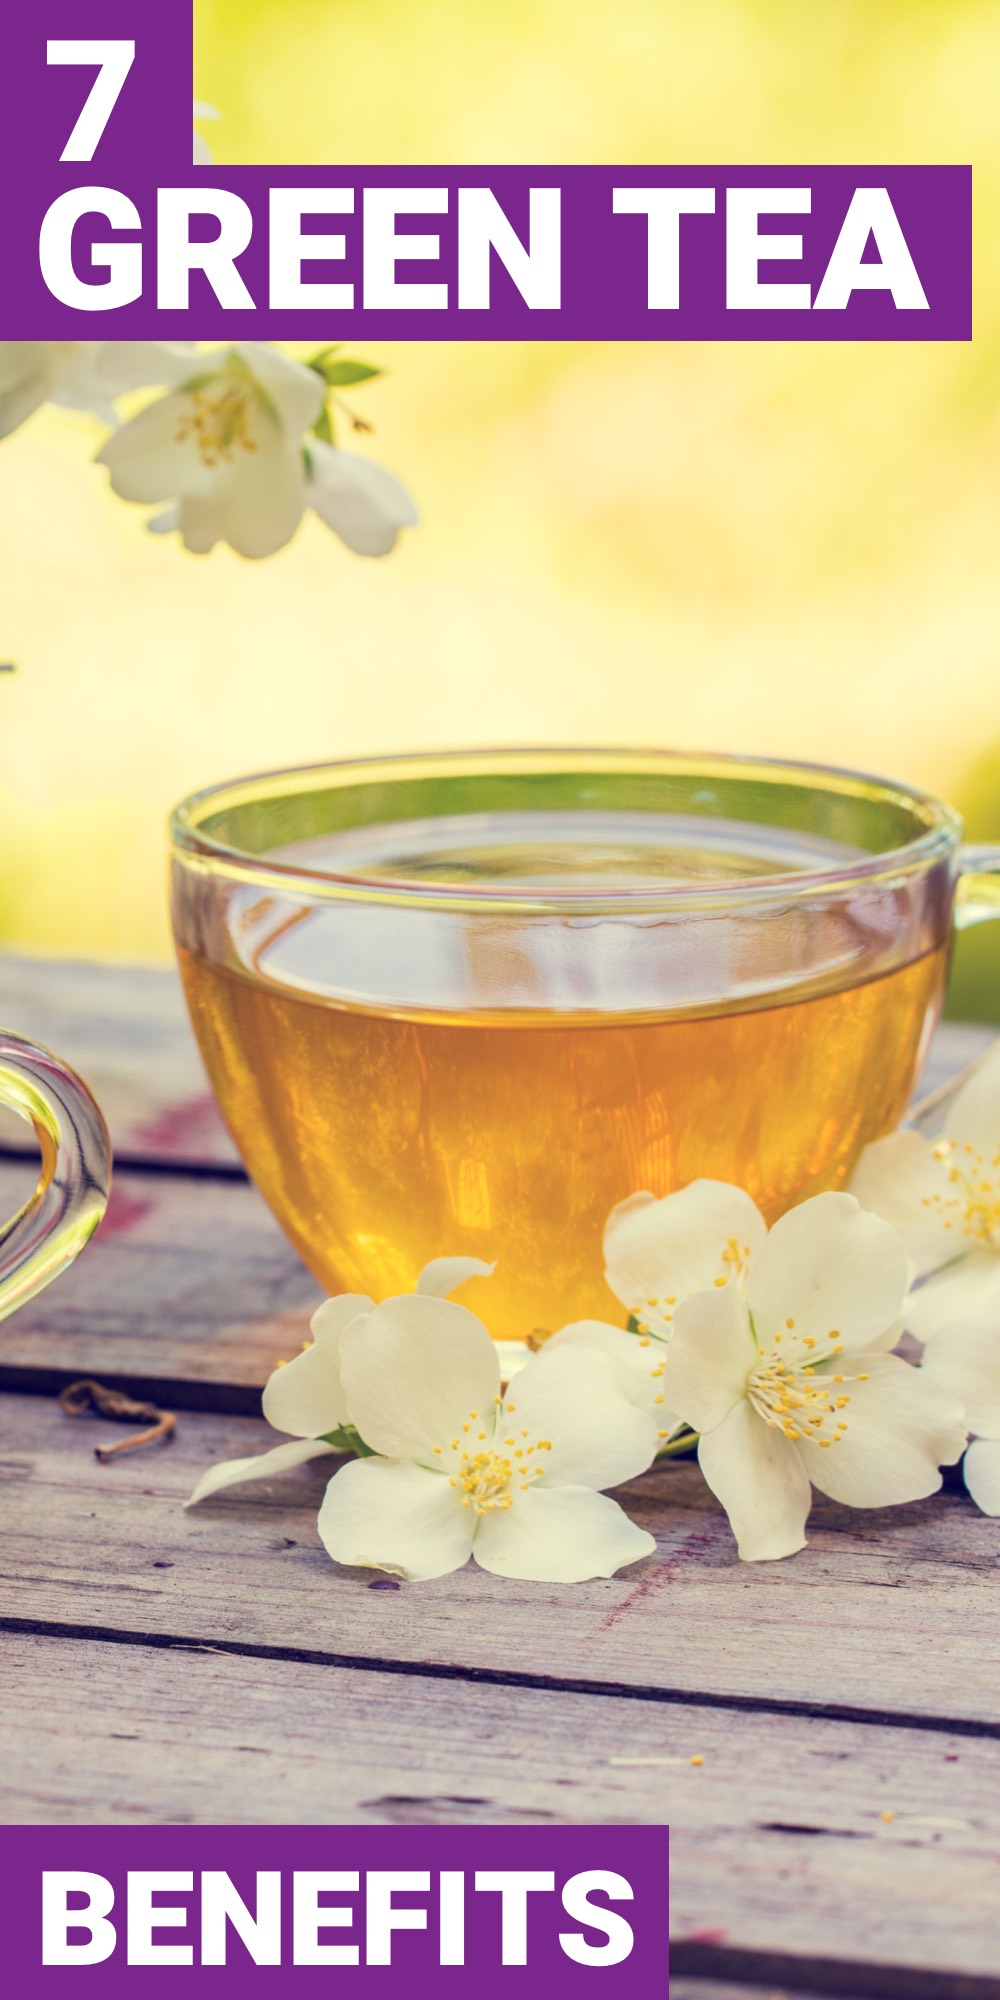 The health benefits of green tea are good for anybody. Here are 7 benefits of green tea that everyone should take advantage of.